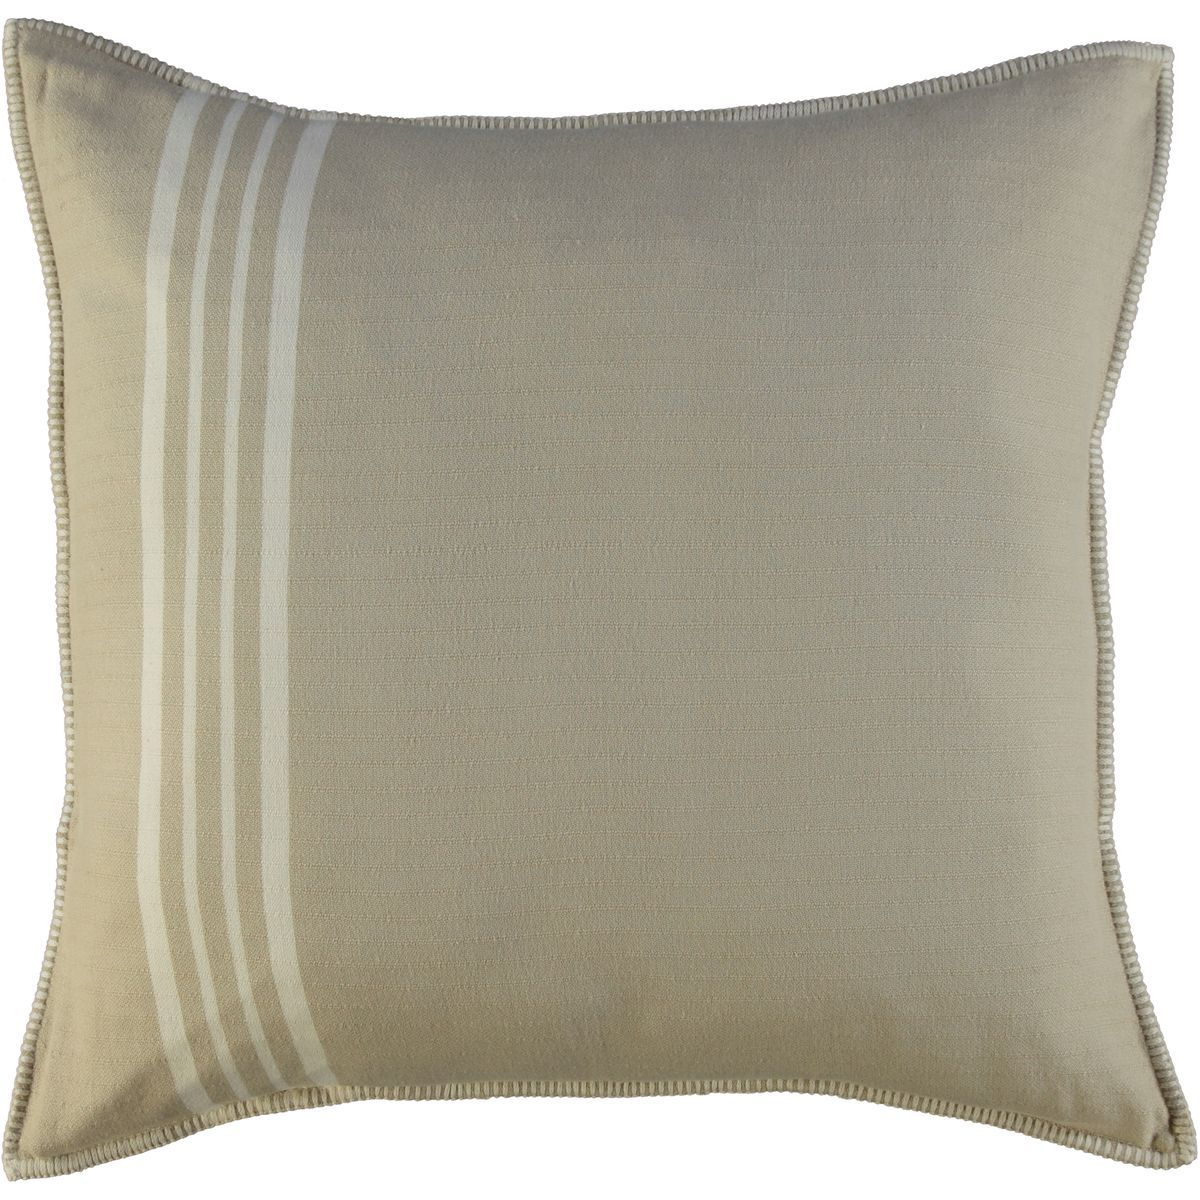 Cushion Cover Sultan - Beige / 65x65